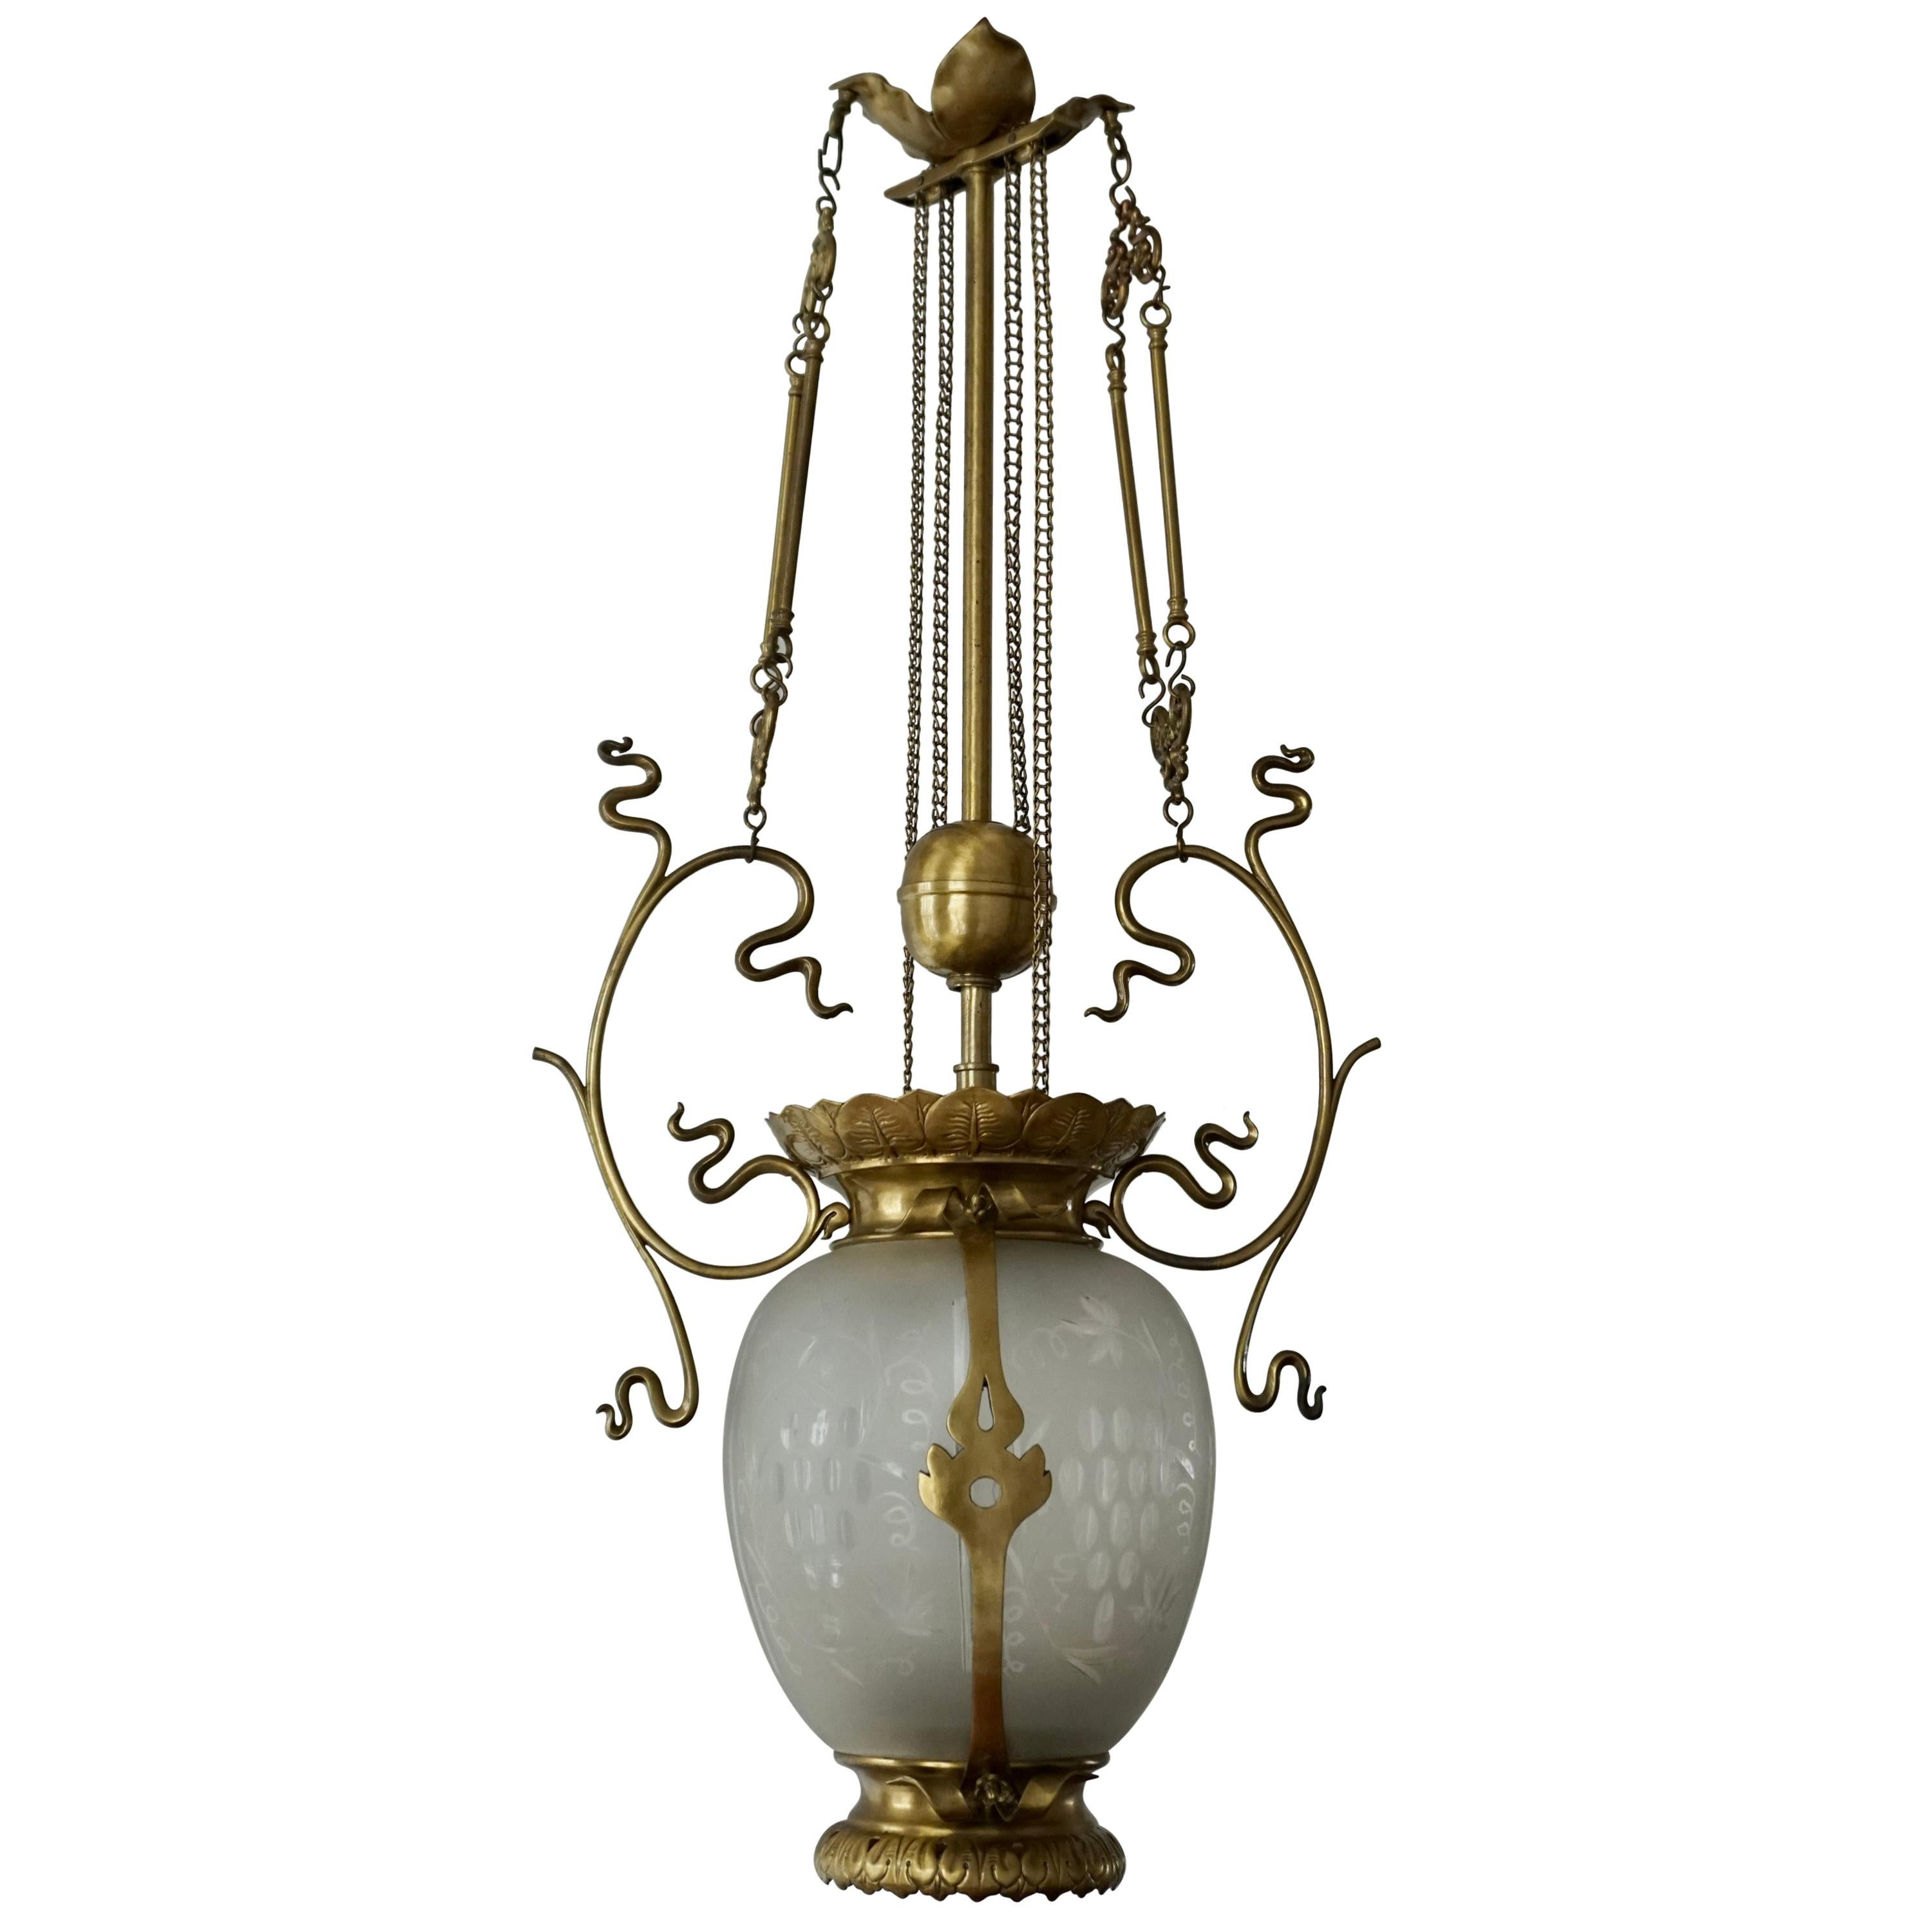 Elegant Art Nouveau Pendant Light in Brass and Glass